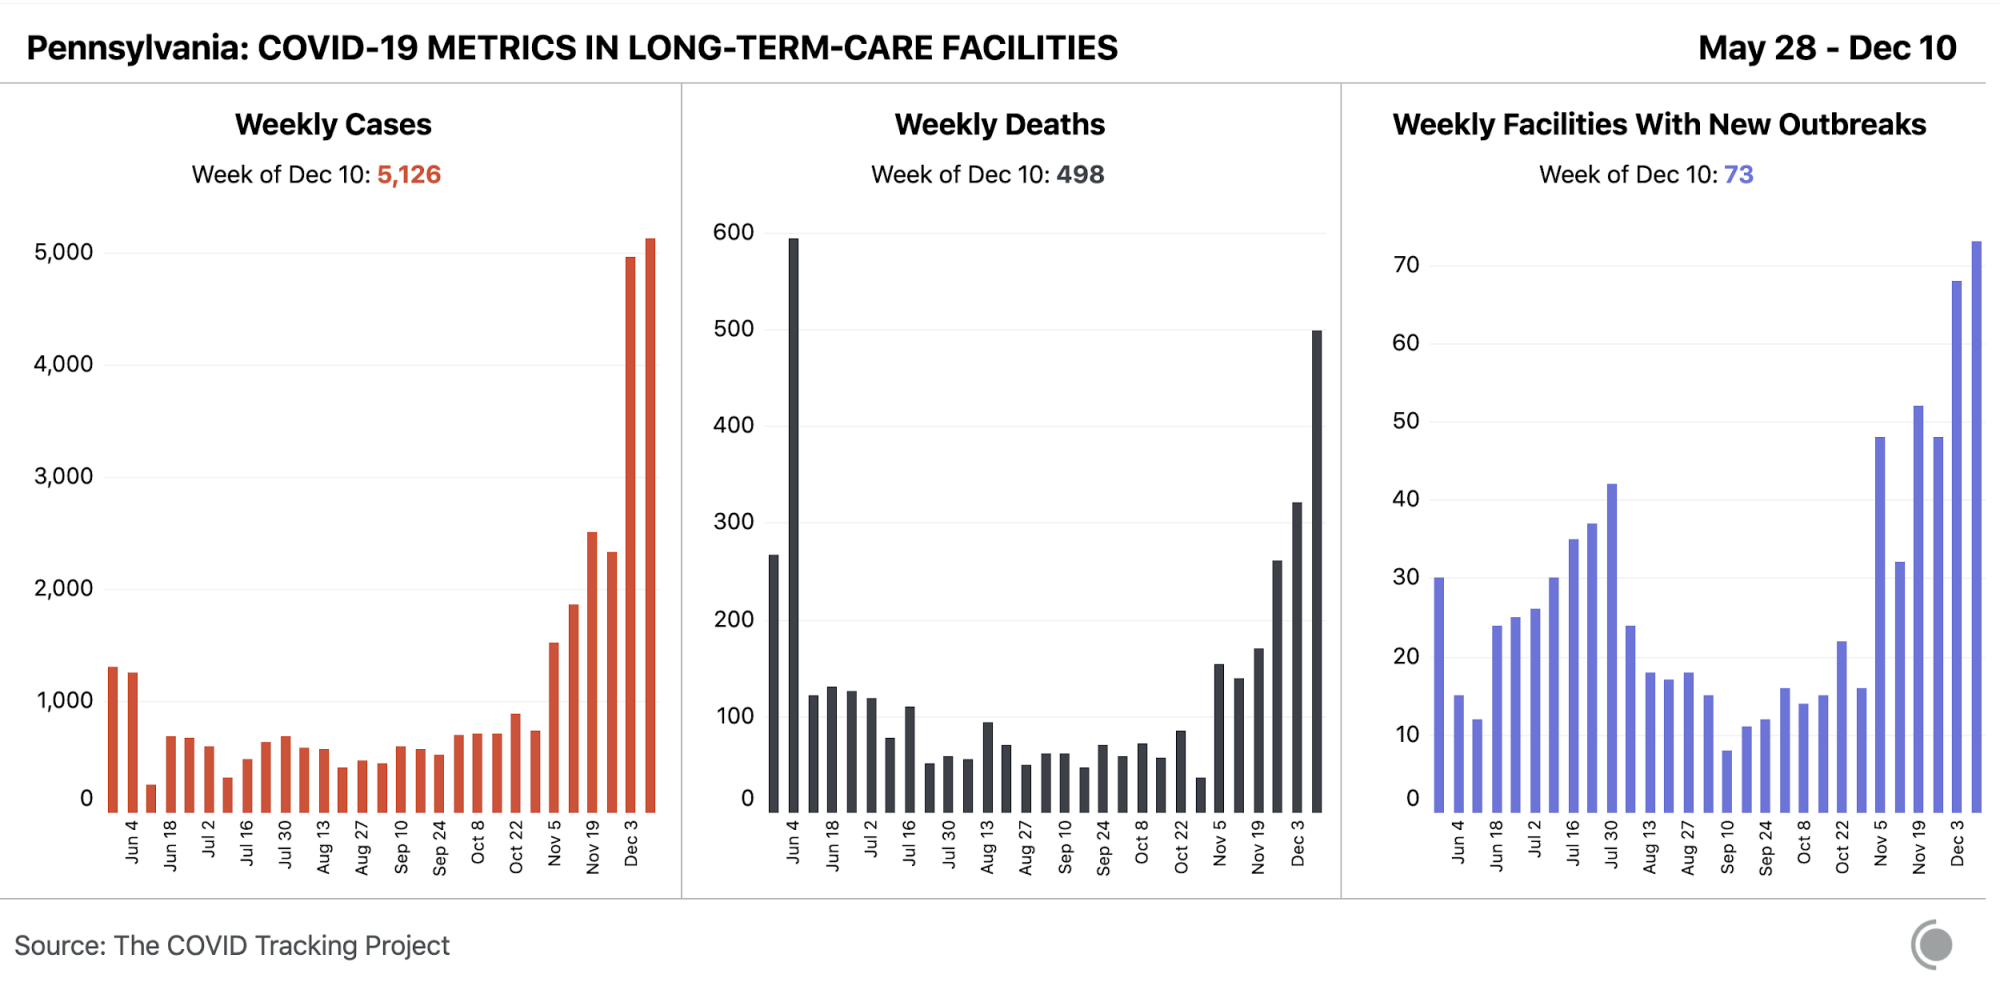 Bar chart of weekly cases, deaths, and facilities with new outbreaks in Pennsylvania. This week's new cases and facilities with new outbreaks are the highest data points in their respective graphs.